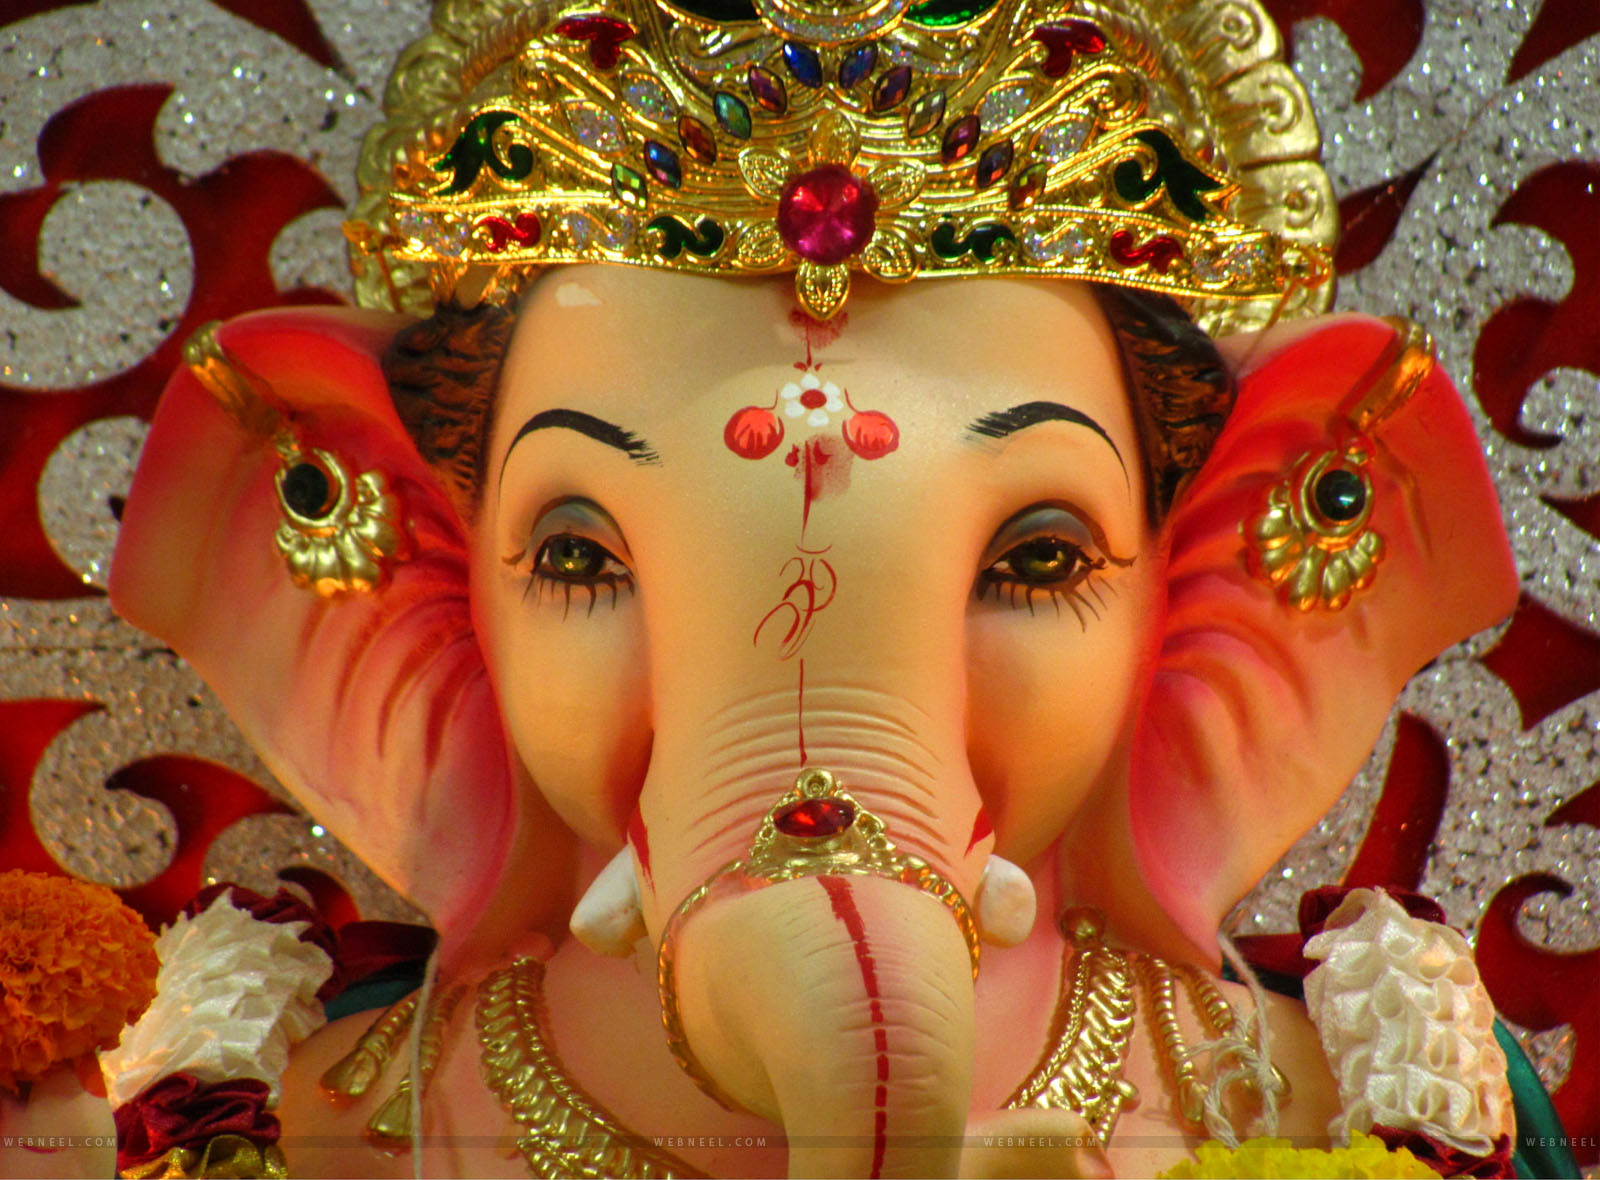 Good Wallpaper Angry Ganpati - 2-lord-ganesh-wallpaper-raman-rambo  Pic_816662      .jpg